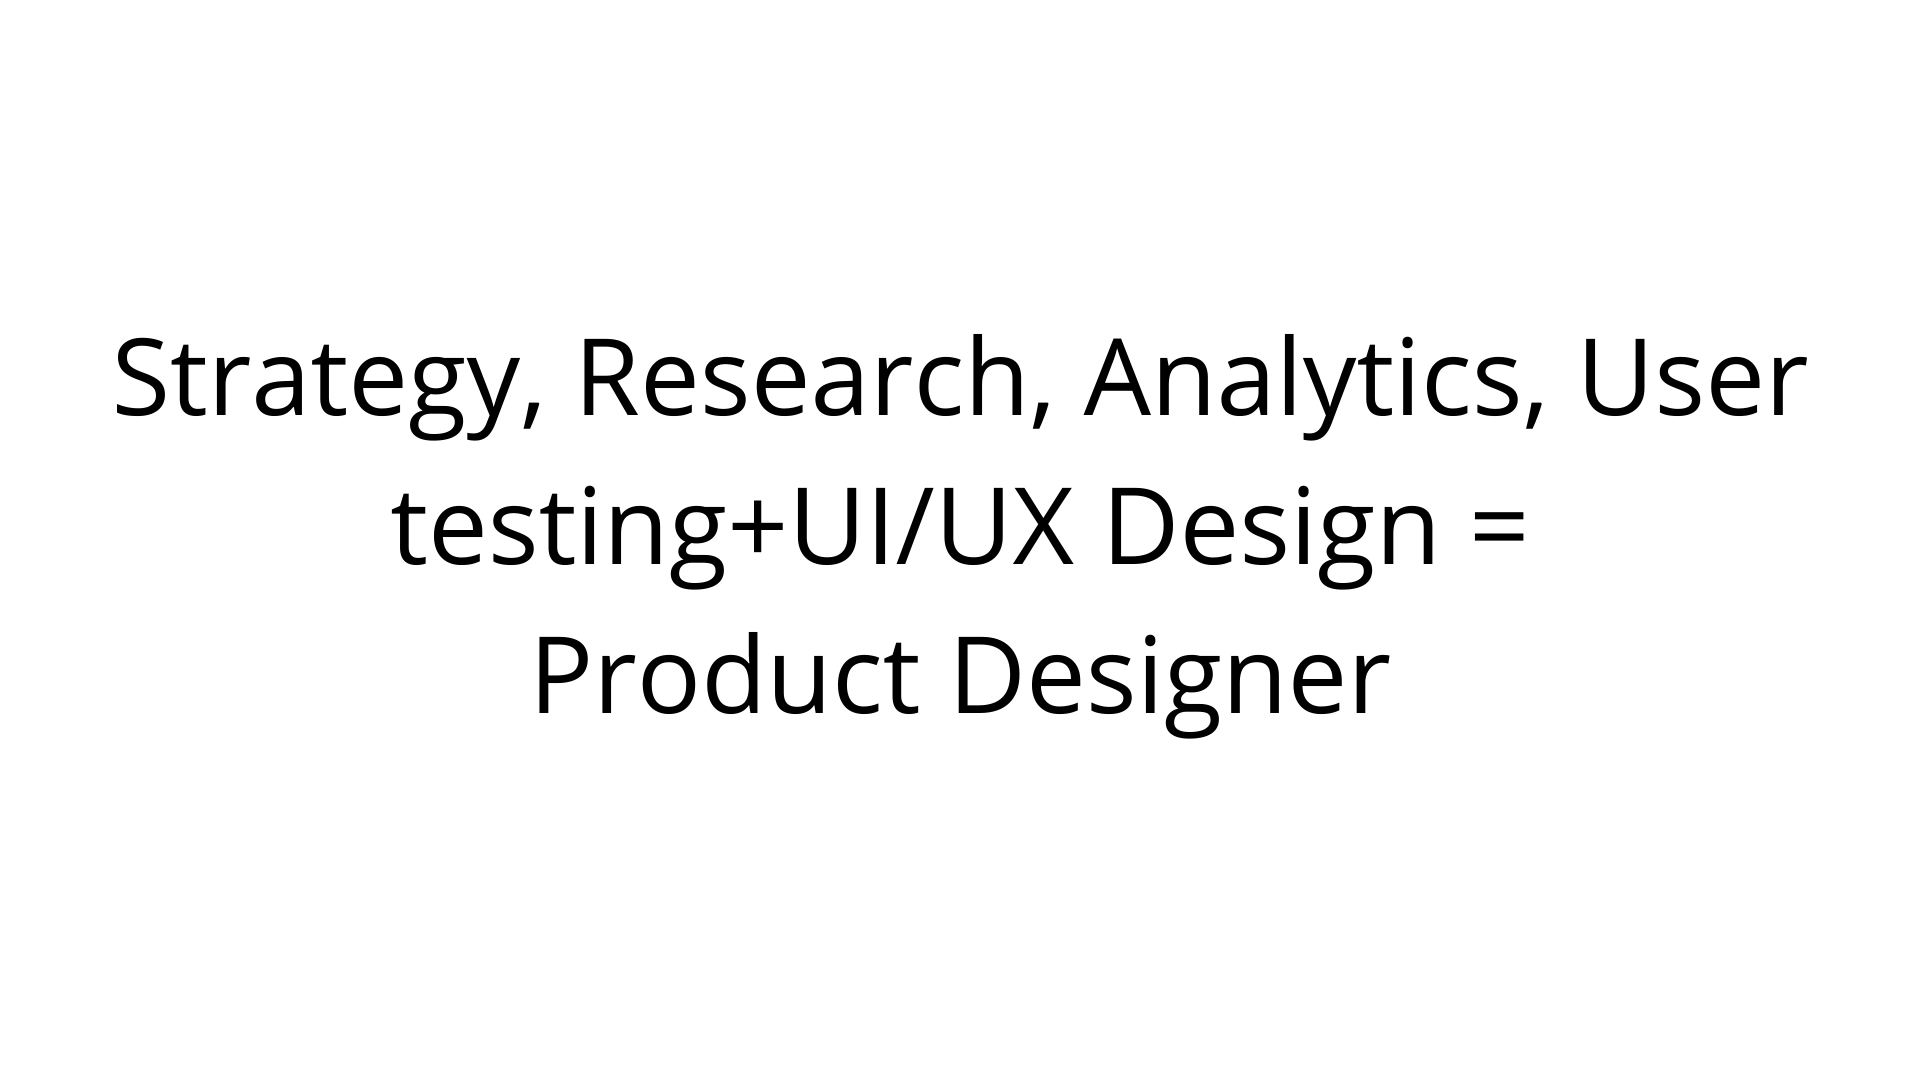 what does a product designer do?